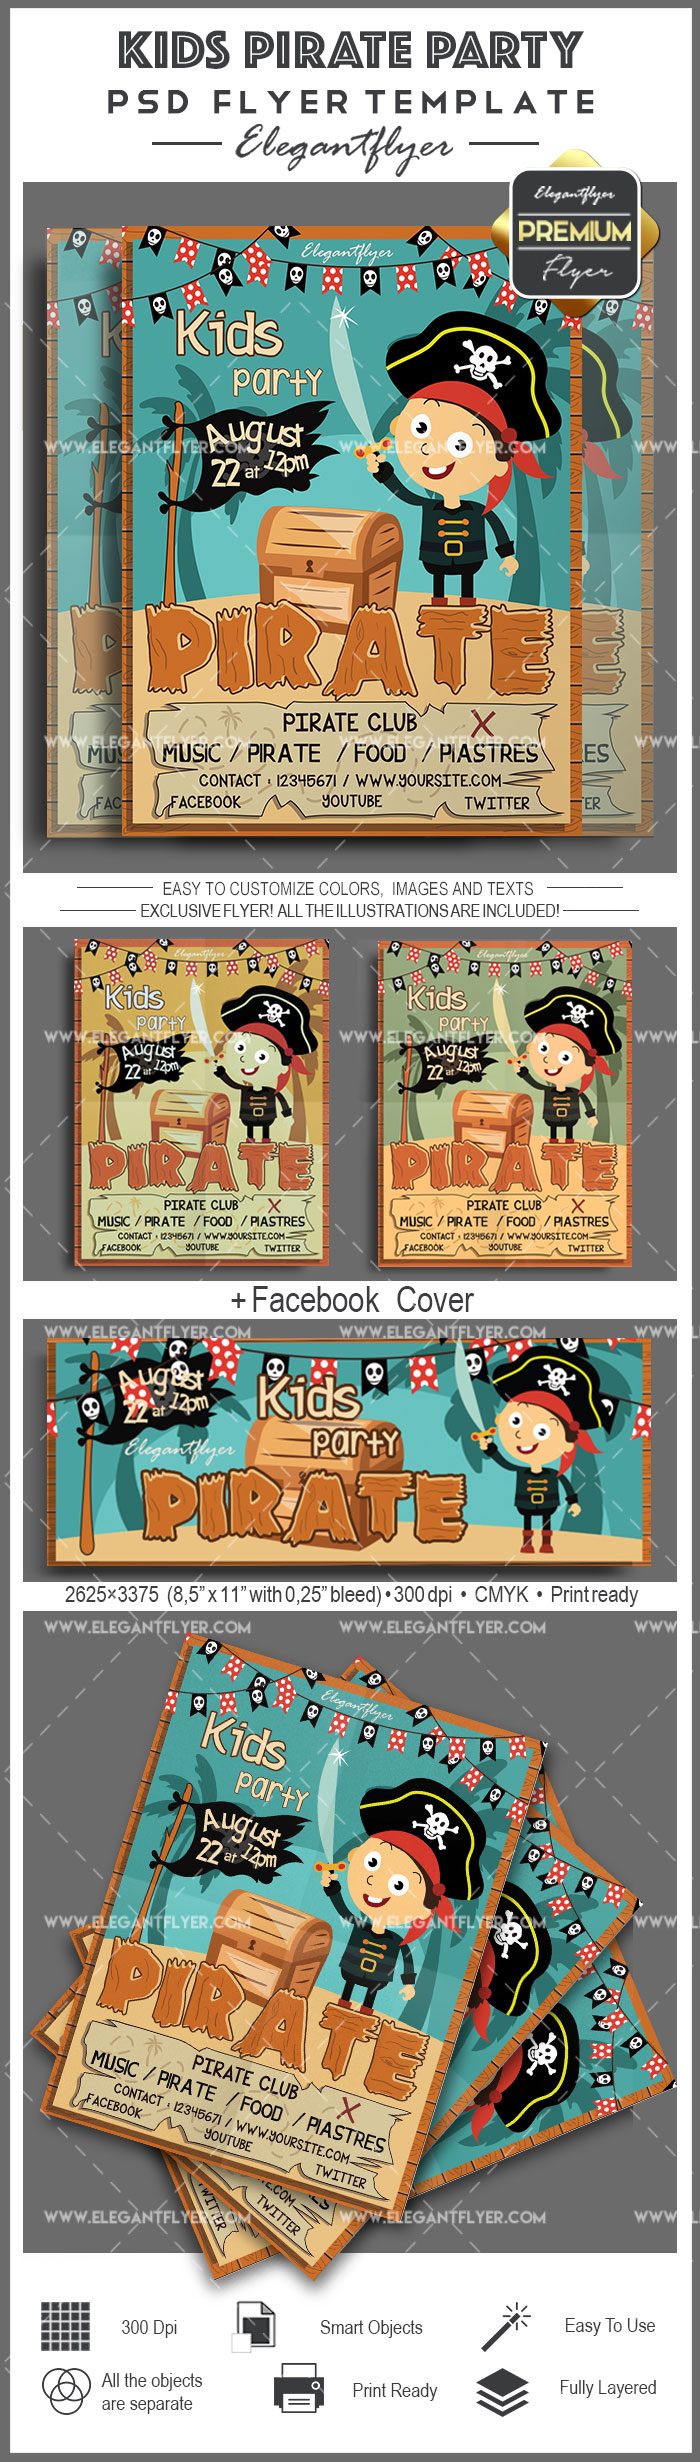 Kids Pirate Party – Flyer PSD Template